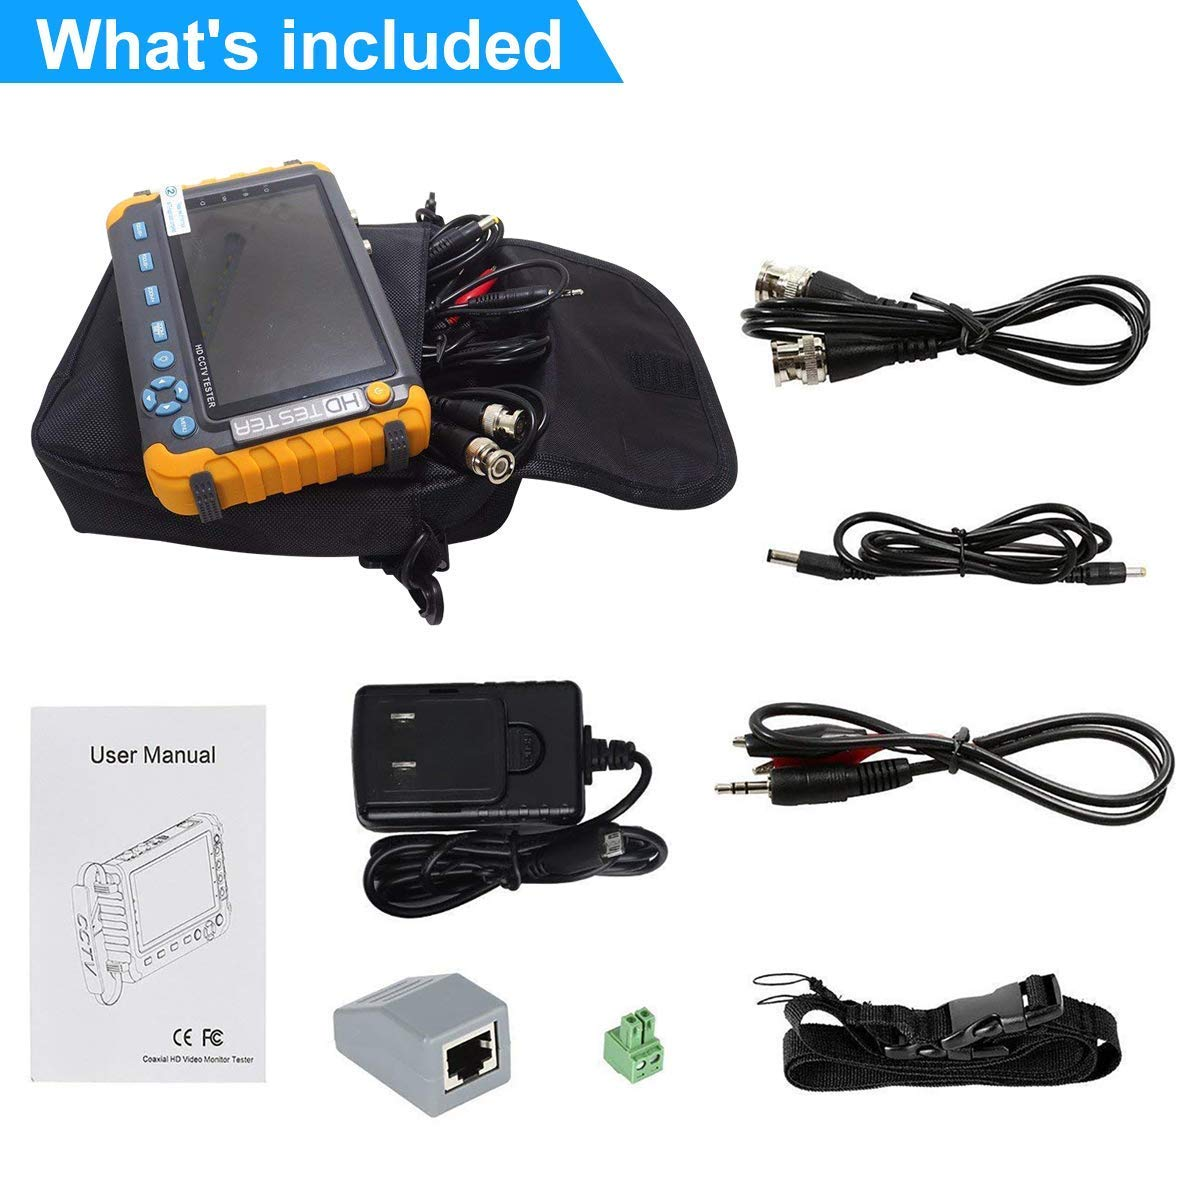 5.0MP 4 en 1 CCTV Tester, AHD/TVI/CVI Coaxial HD Video Monitor Tester, Analog Video/UTP Cable Test VGA/HDMI Entrada DC12V Salida Probador de la cámara: ...